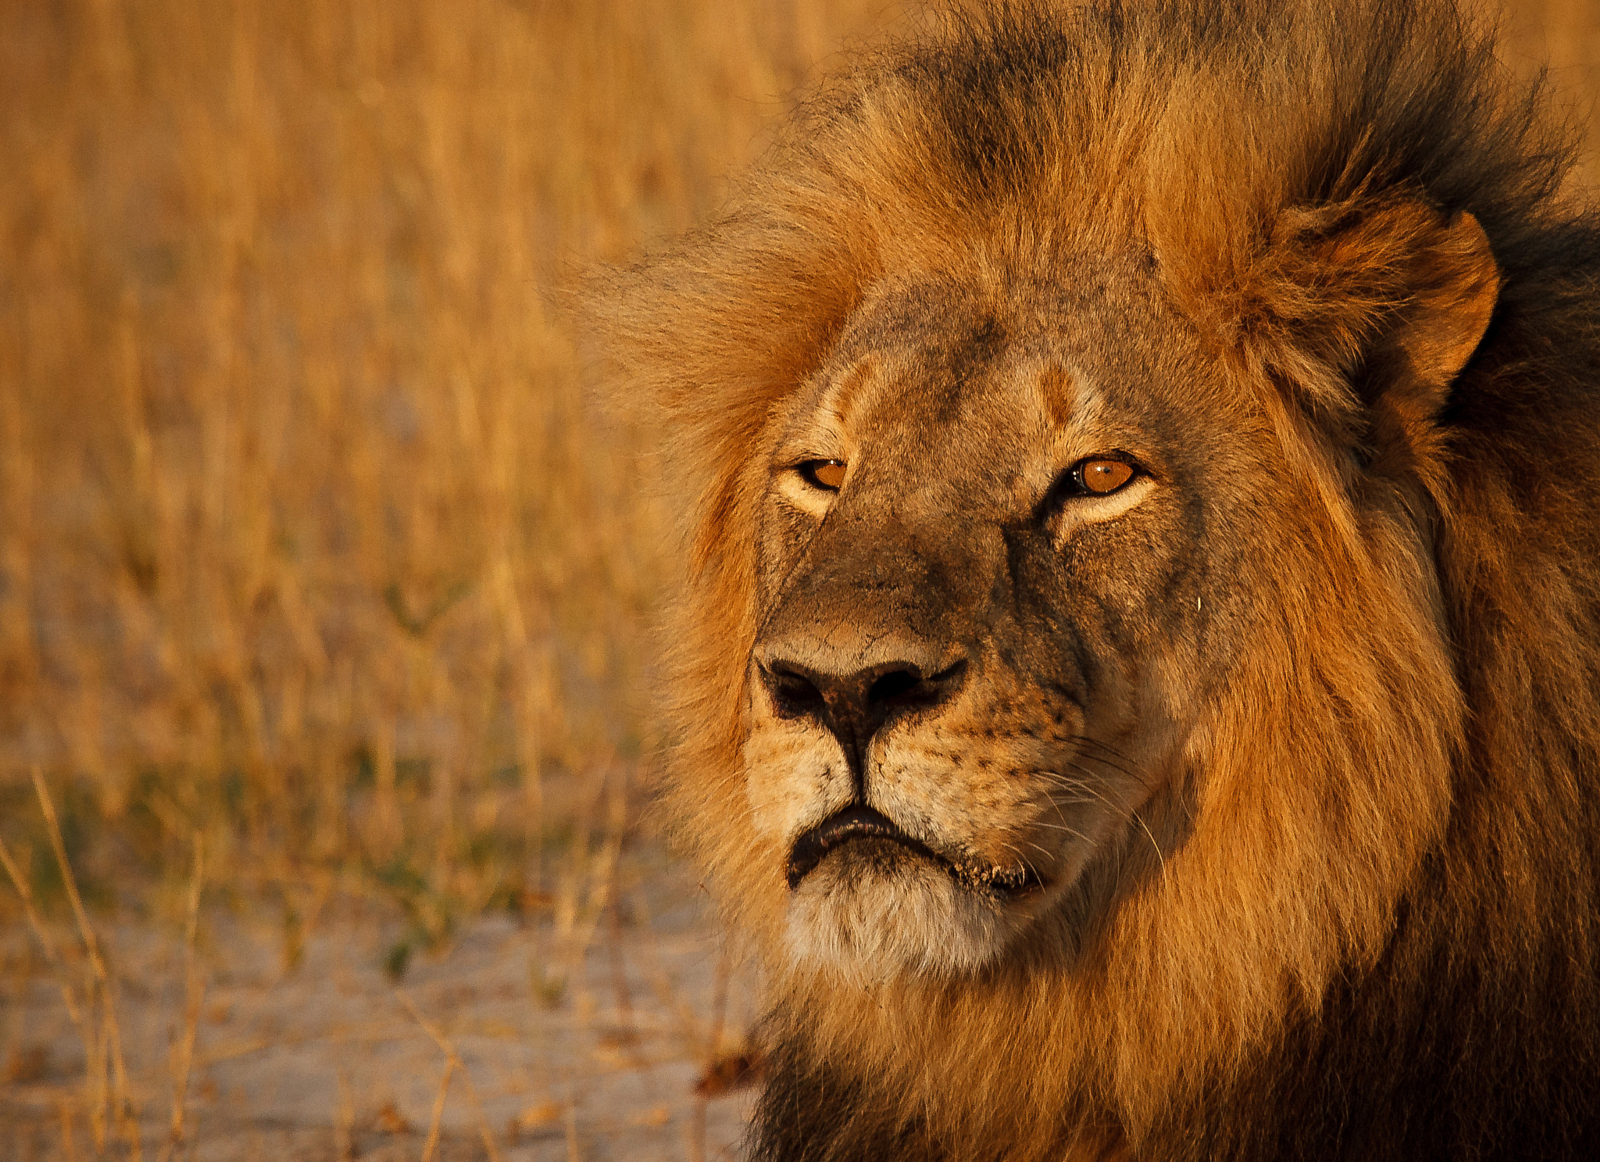 RIP Cecil: 10 Photos of One of the Most Beautiful Lions who Ever Lived